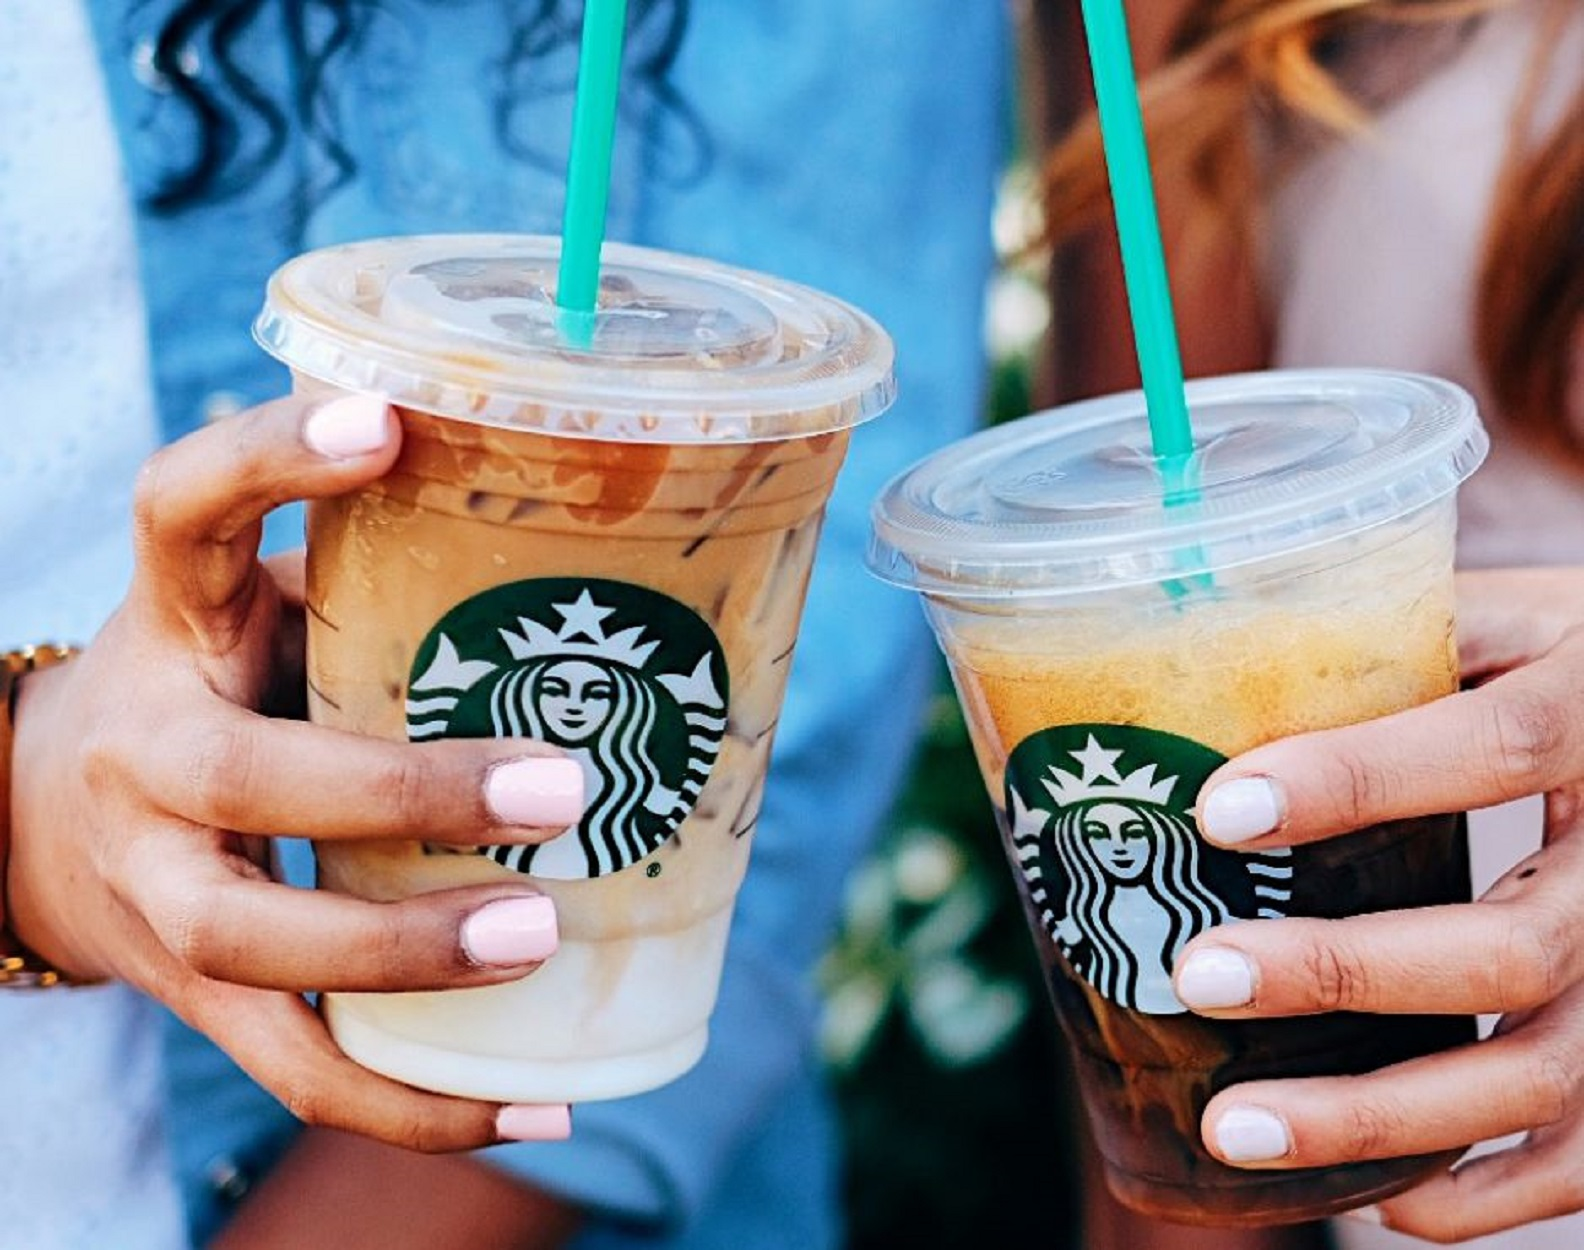 Two hands holding iced coffee from Starbucks